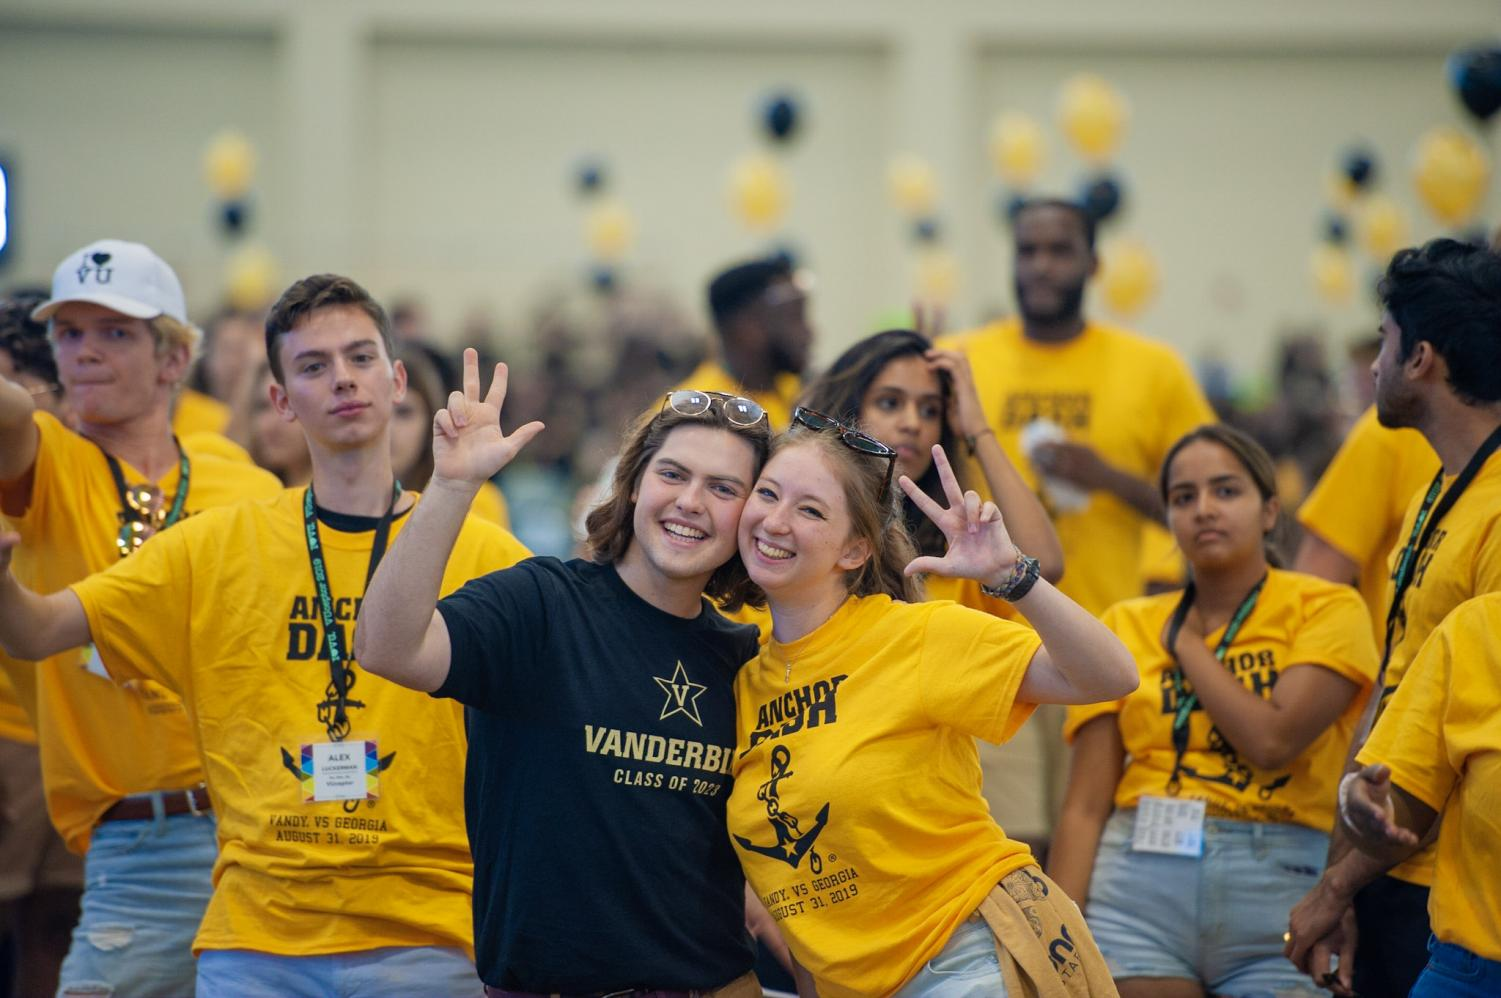 Students+celebrate+Anchor+Dash+before+the+first+game+of+the+season+at+the+Rec+Fieldhouse+on+Saturday%2C+Aug.+31.+%28Photo+by+Truman+McDaniel%29